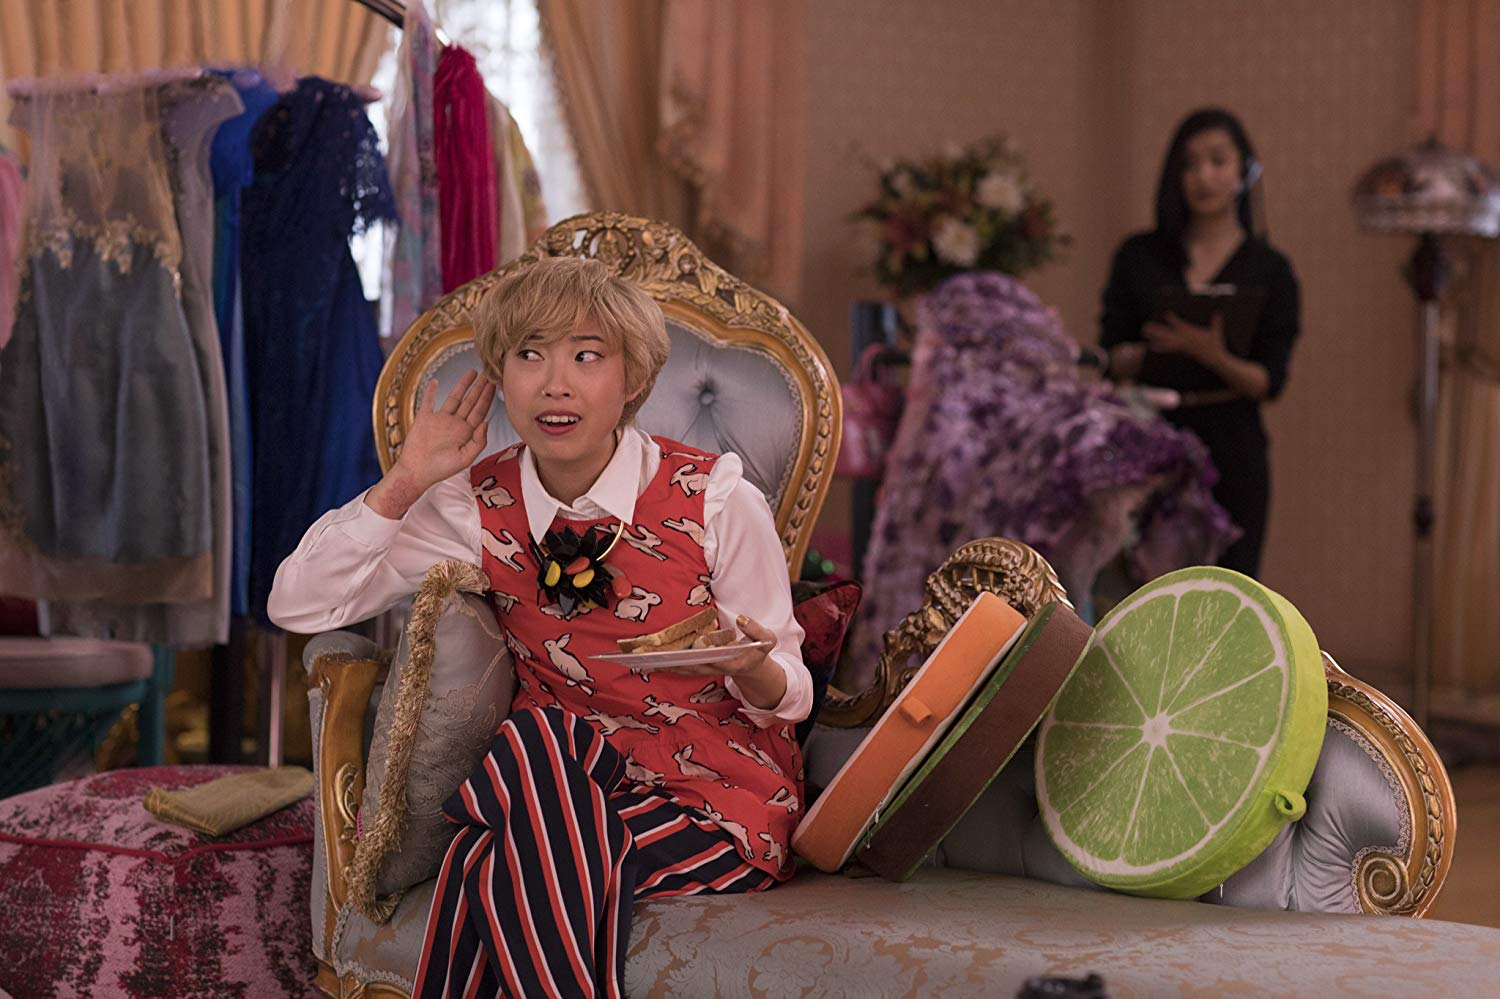 Awkwafina, wearing a short blonde wig, sits on a couch, holding a plate with her hand to her ear